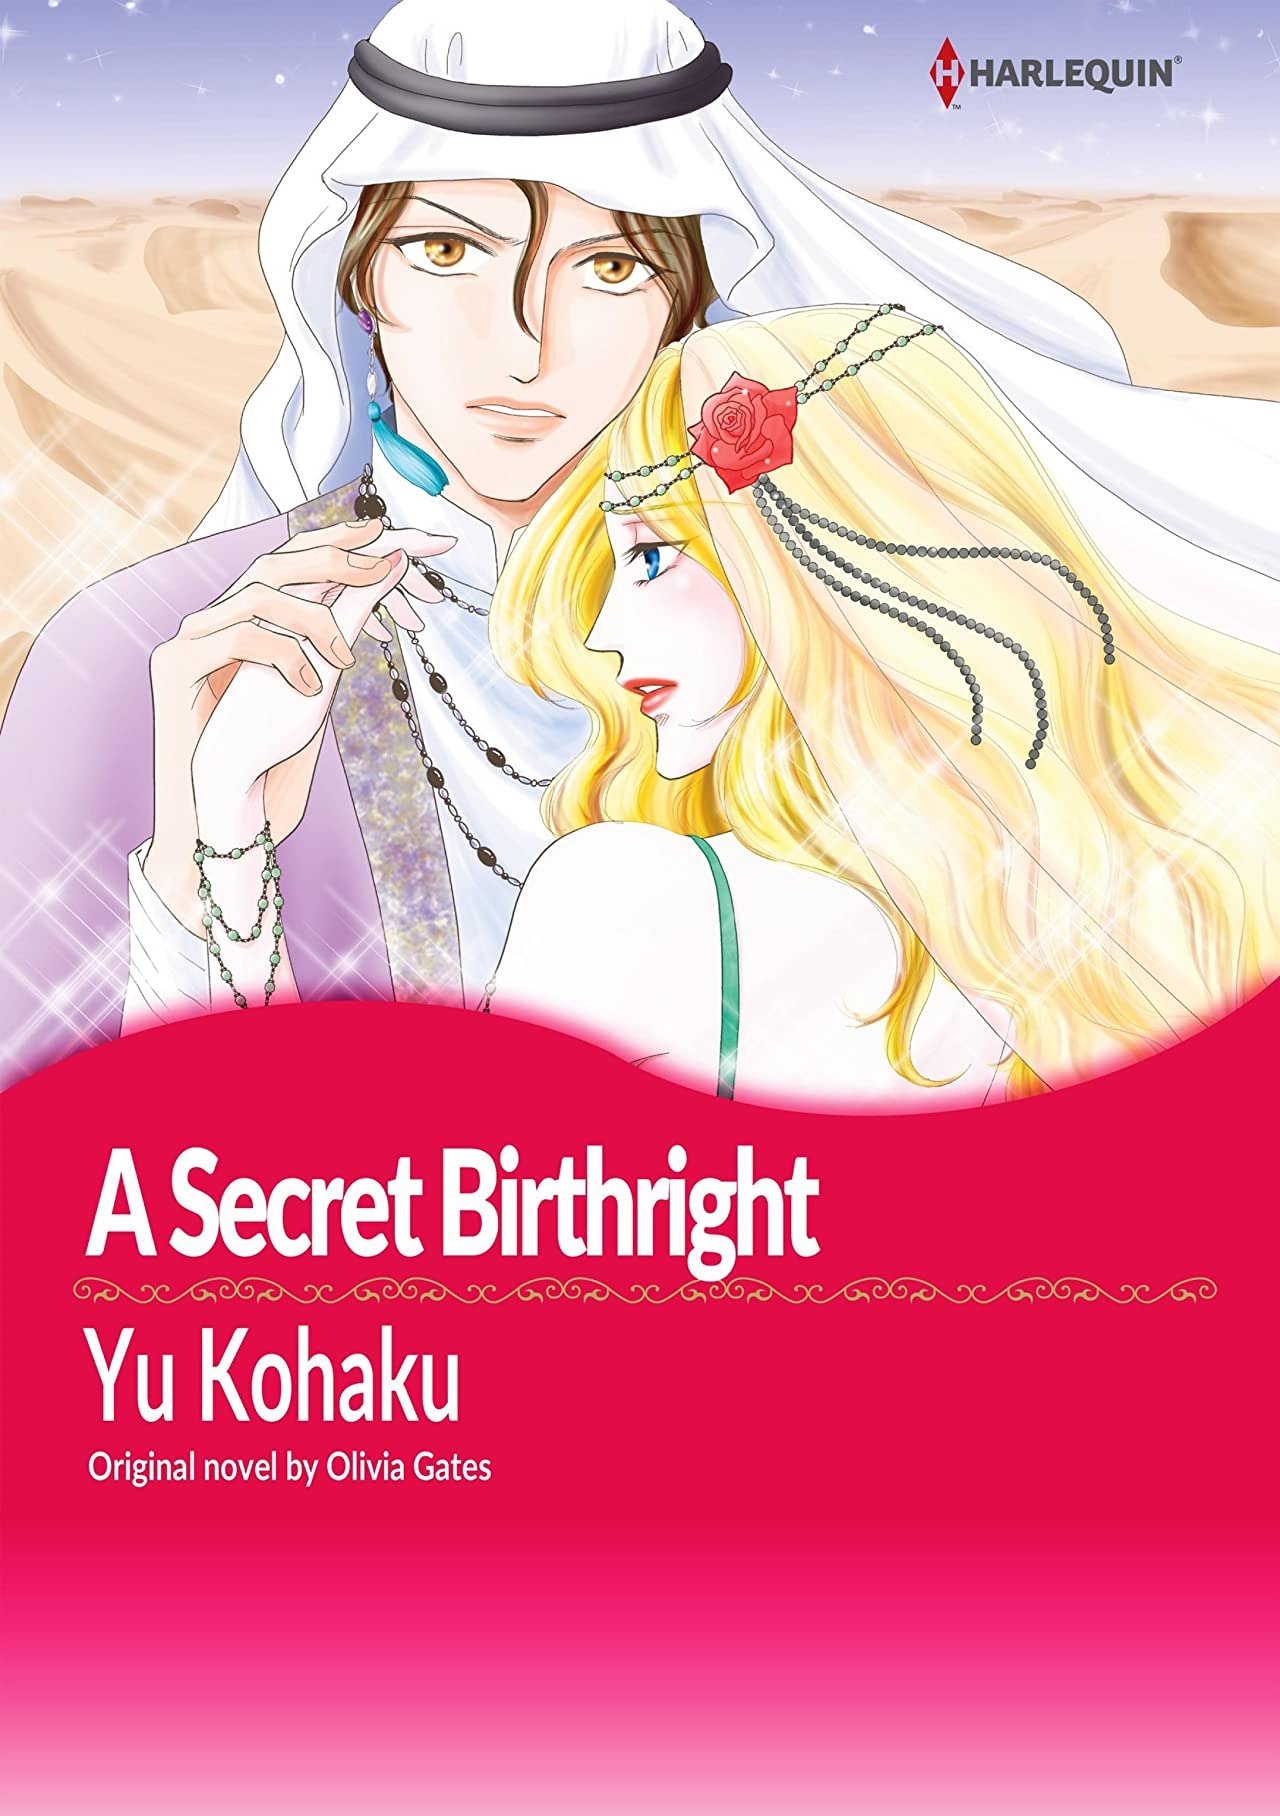 A Secret Birthright